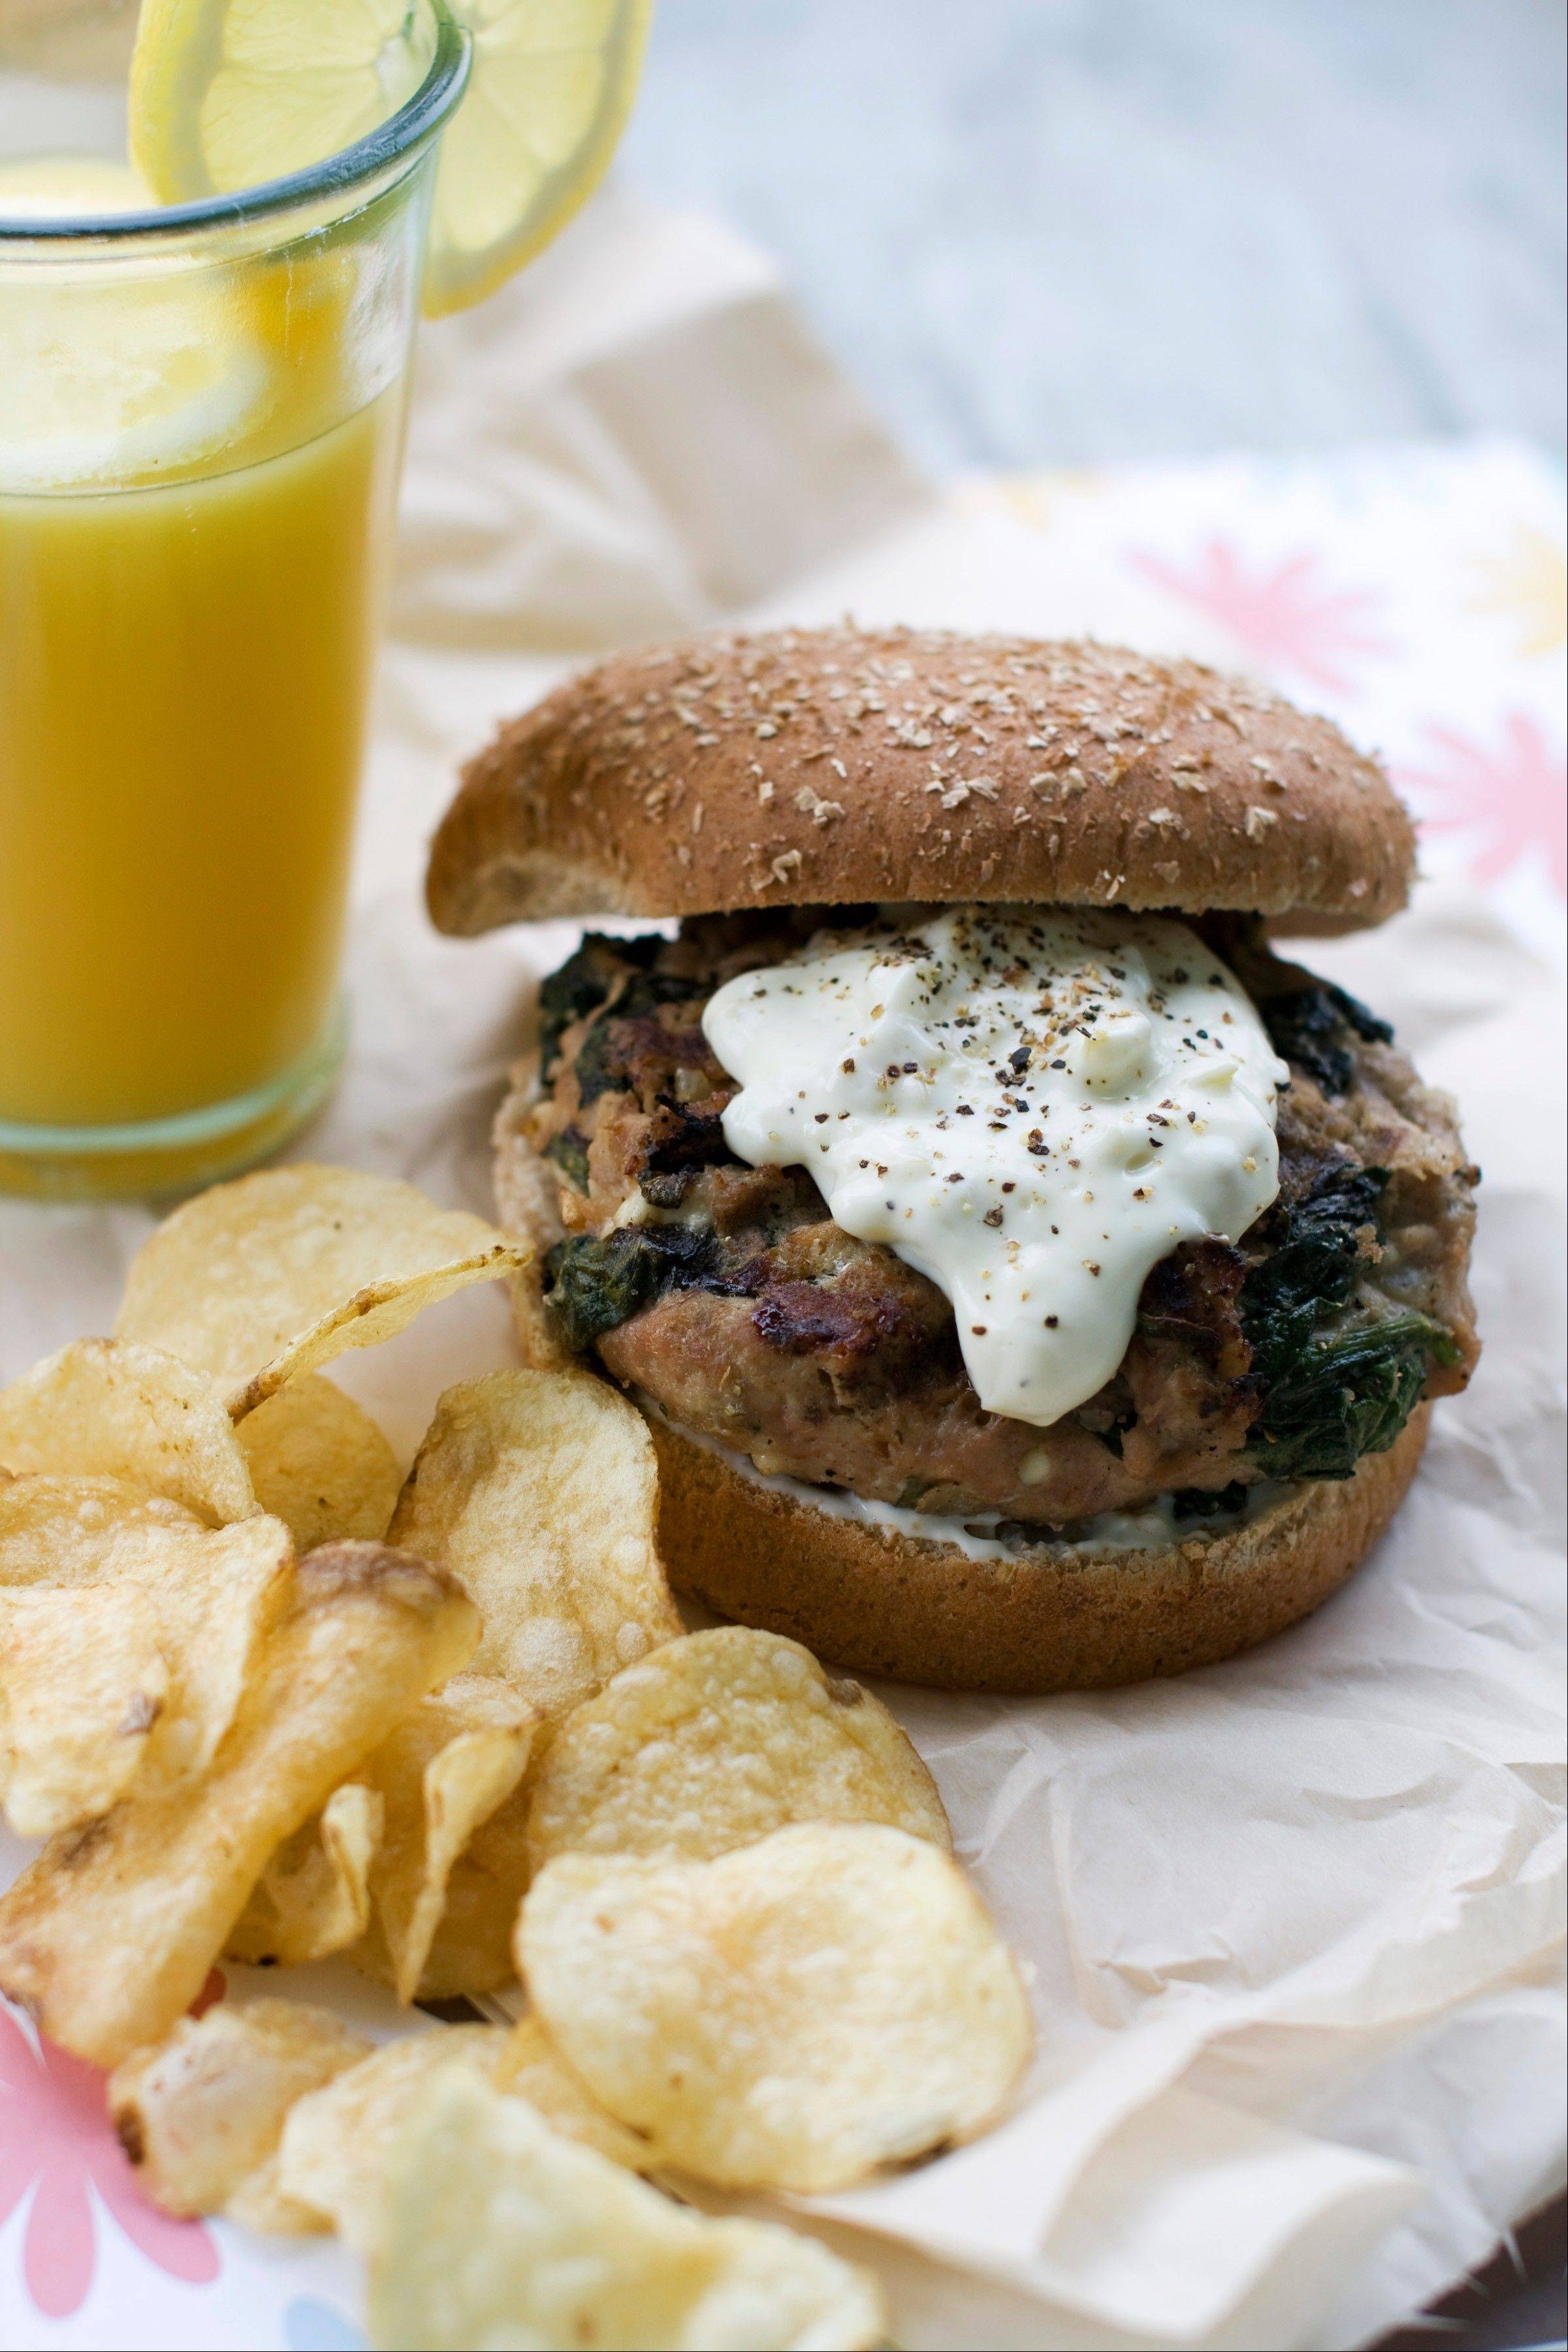 Sara Moulton blends spinach, oregano and feta into ground meat to give her turkey burgers a Greek flare.